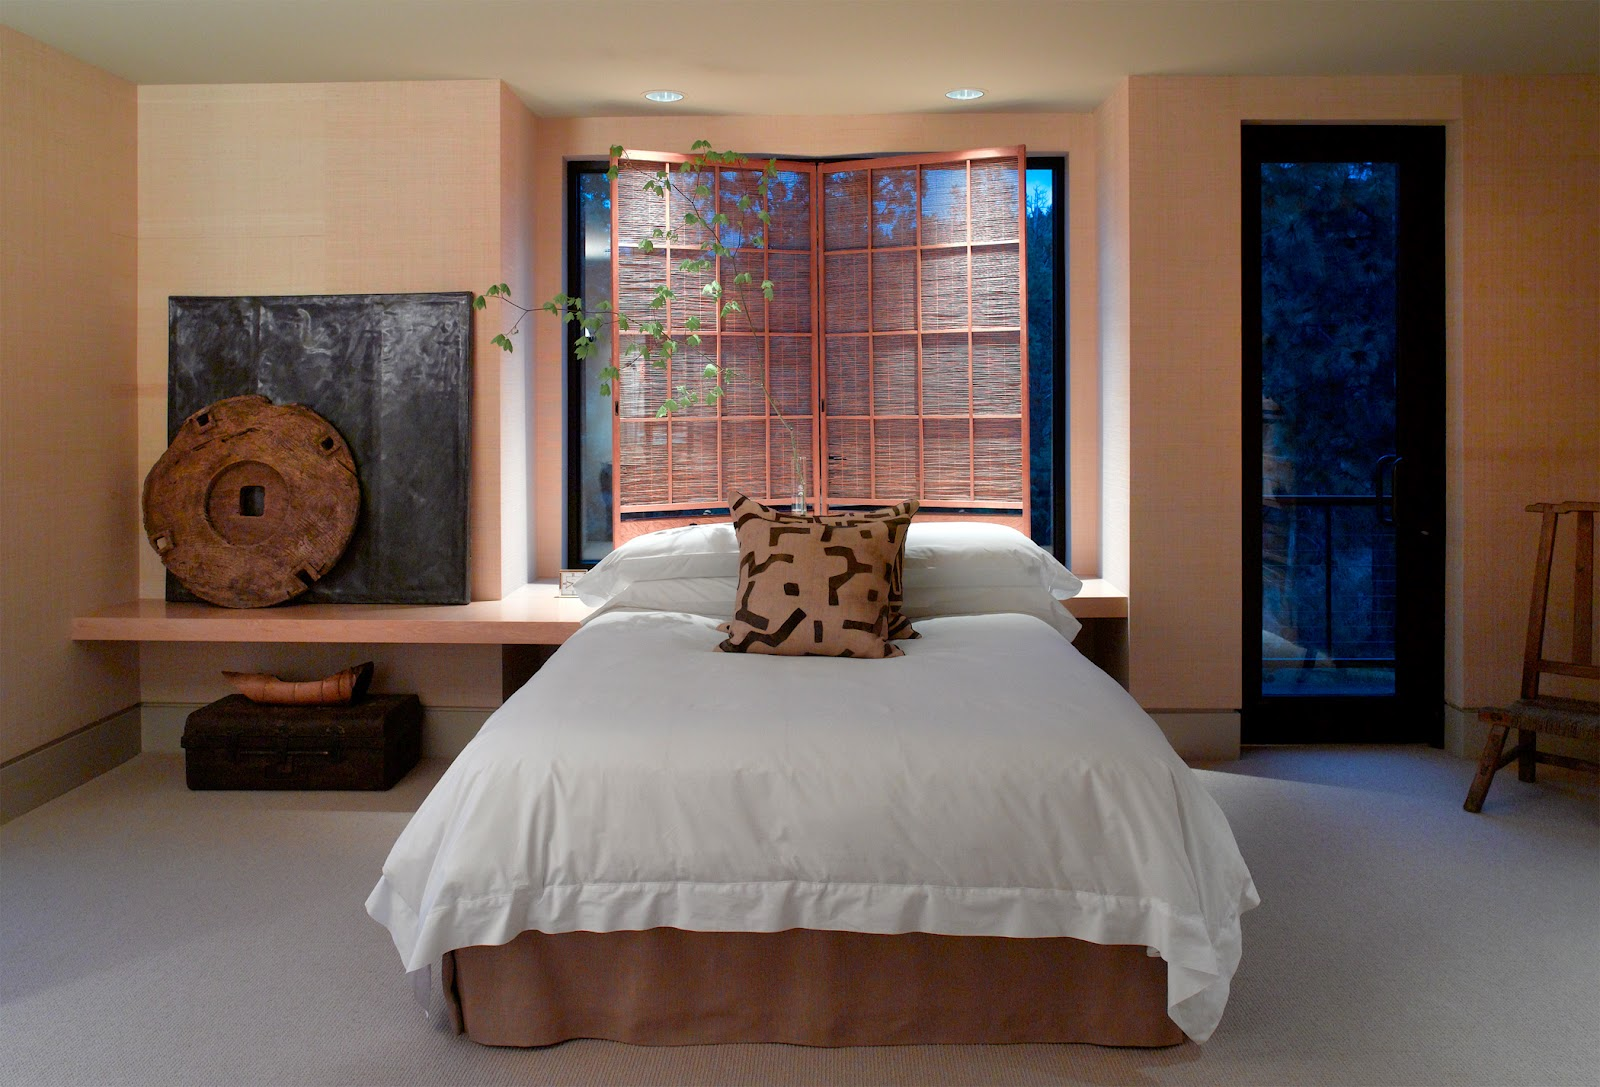 Scott Louis Brown: BLUEPRINT FOR A MASTER BEDROOM